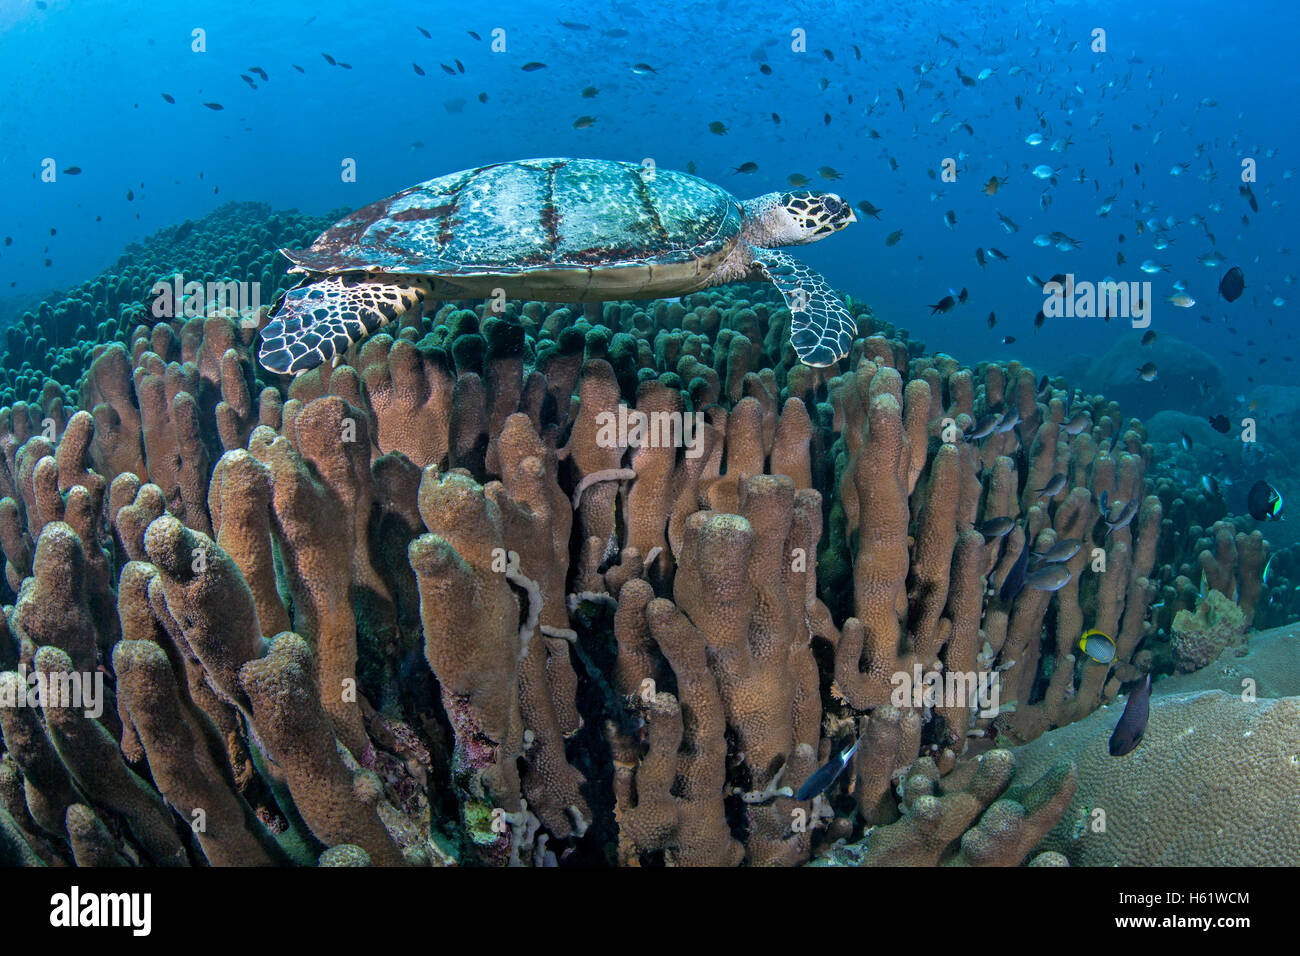 Hawksbill sea turtle swims over coral reef. - Stock Image